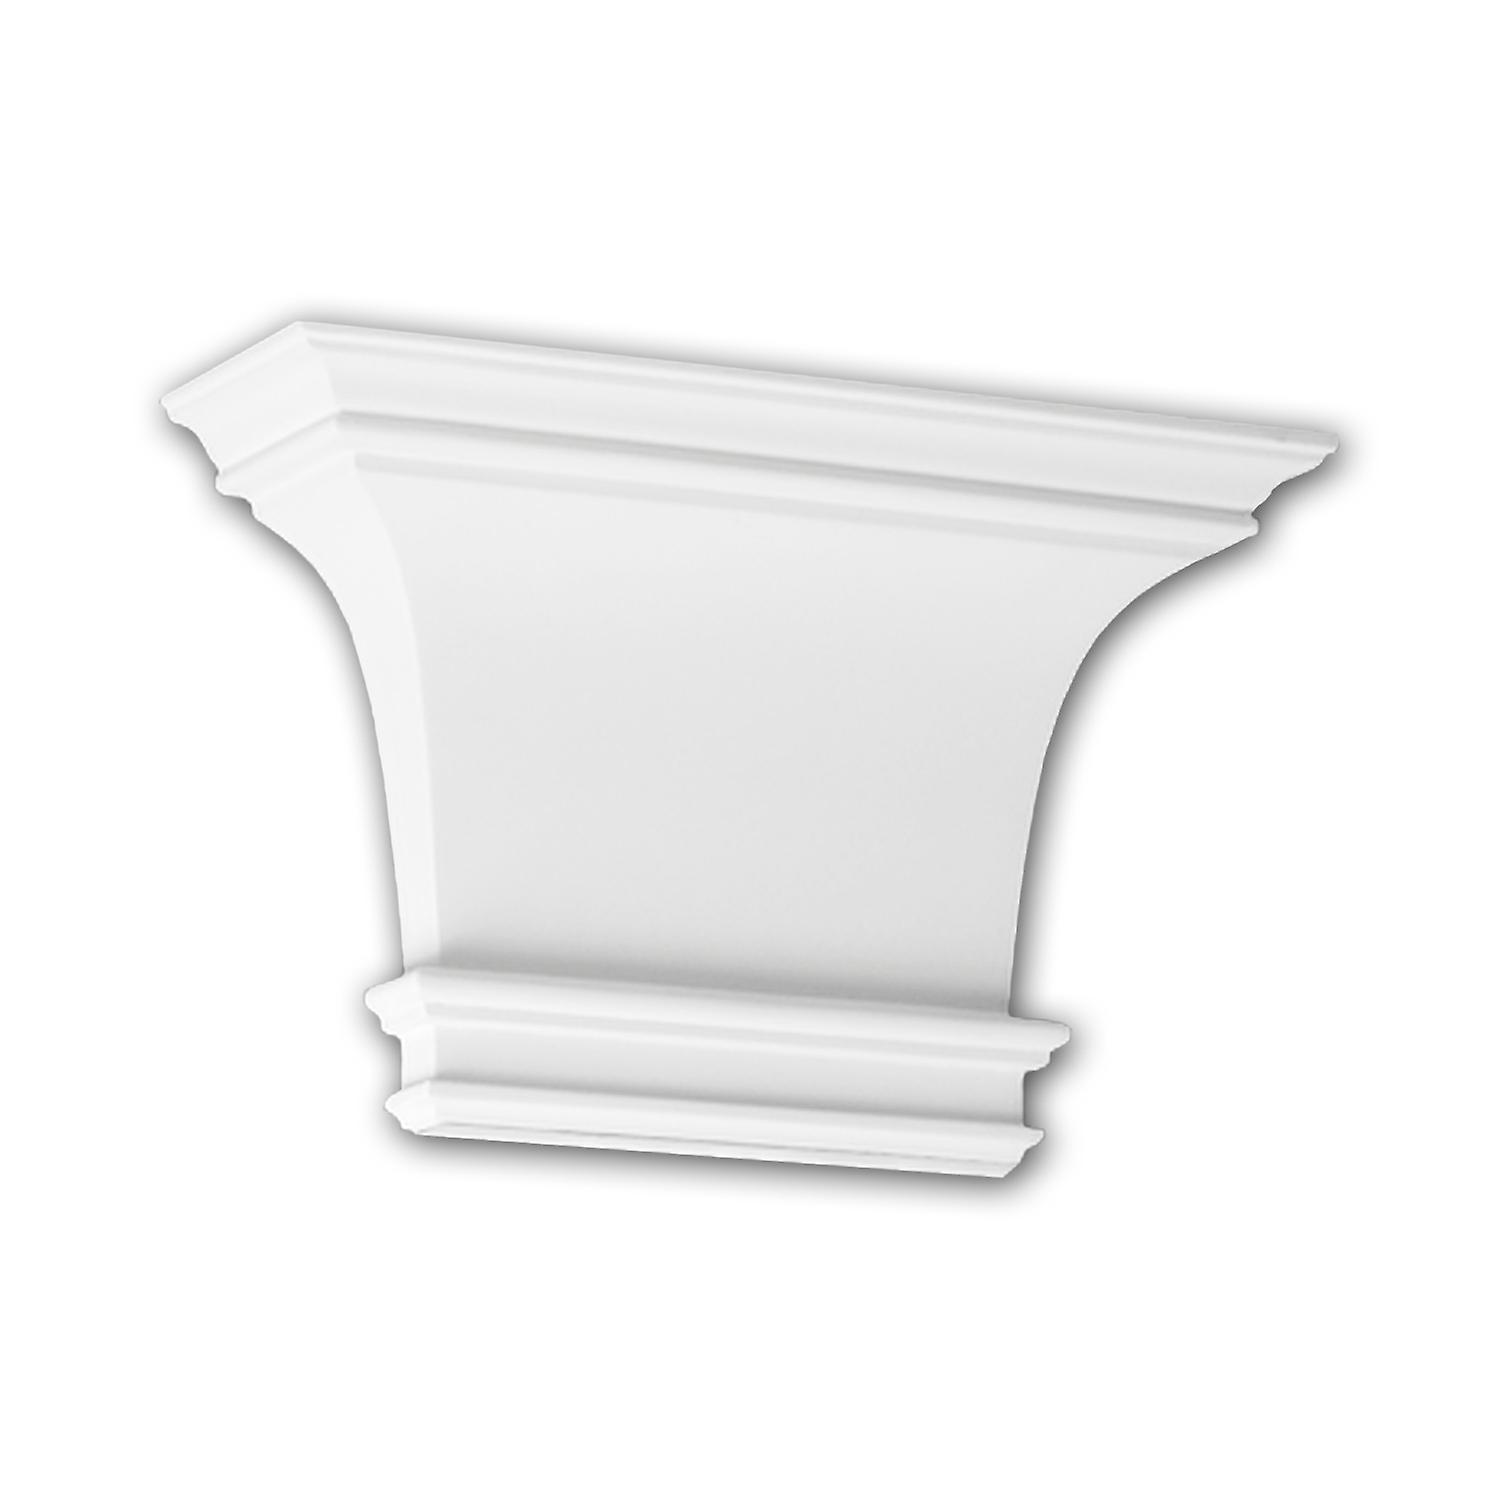 Pilaster capital Profhome 121003